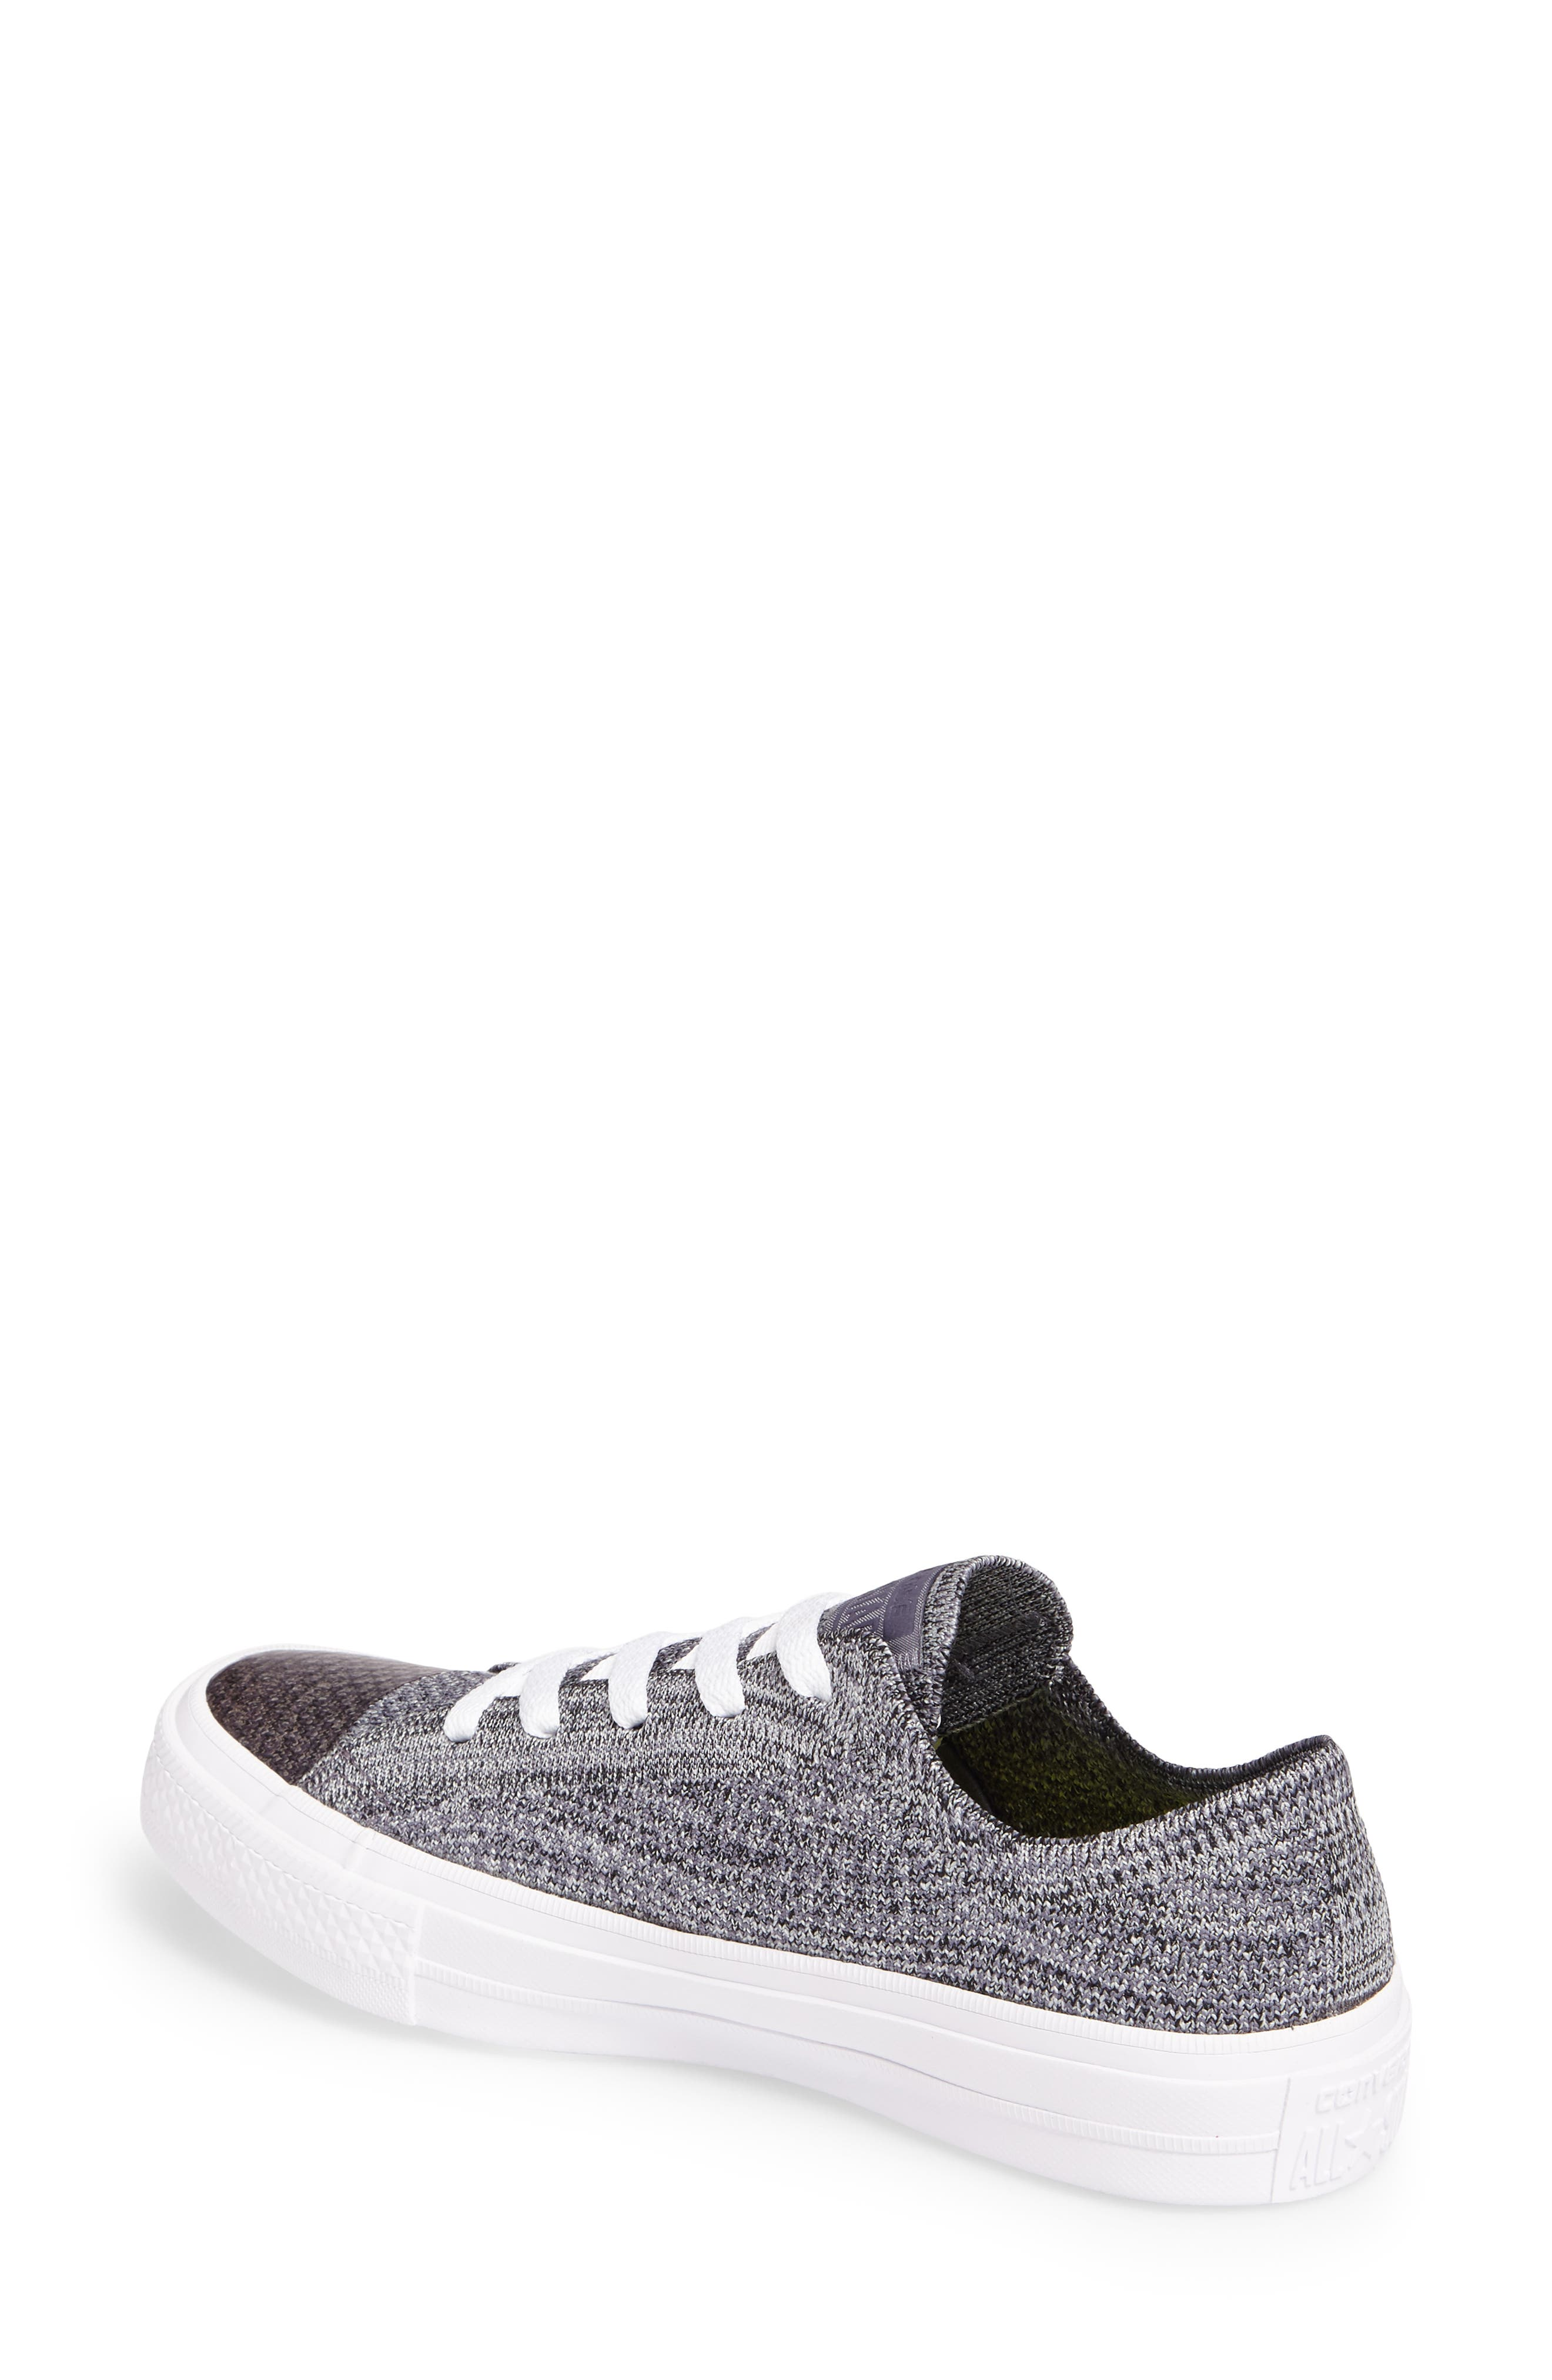 All Star<sup>®</sup> Flyknit Low Sneaker,                             Alternate thumbnail 2, color,                             027